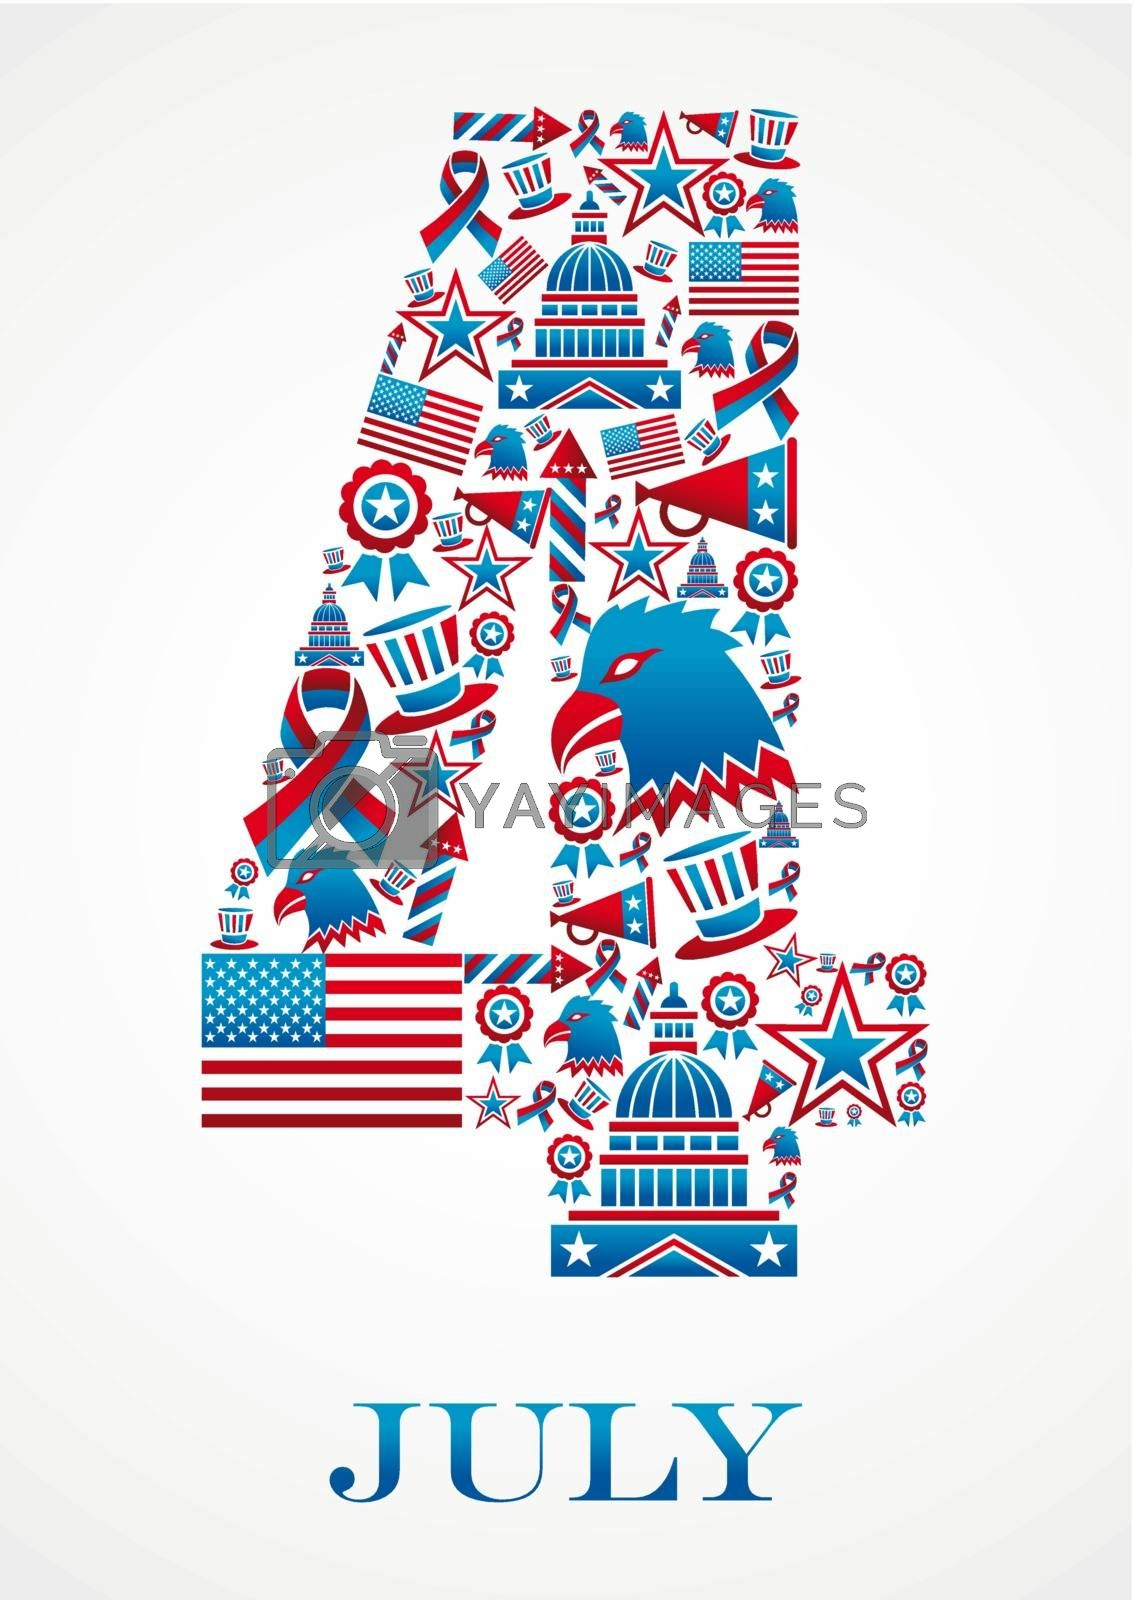 4th july independence day 4 shape illustration. Vector file layered for easy manipulation and custom coloring.